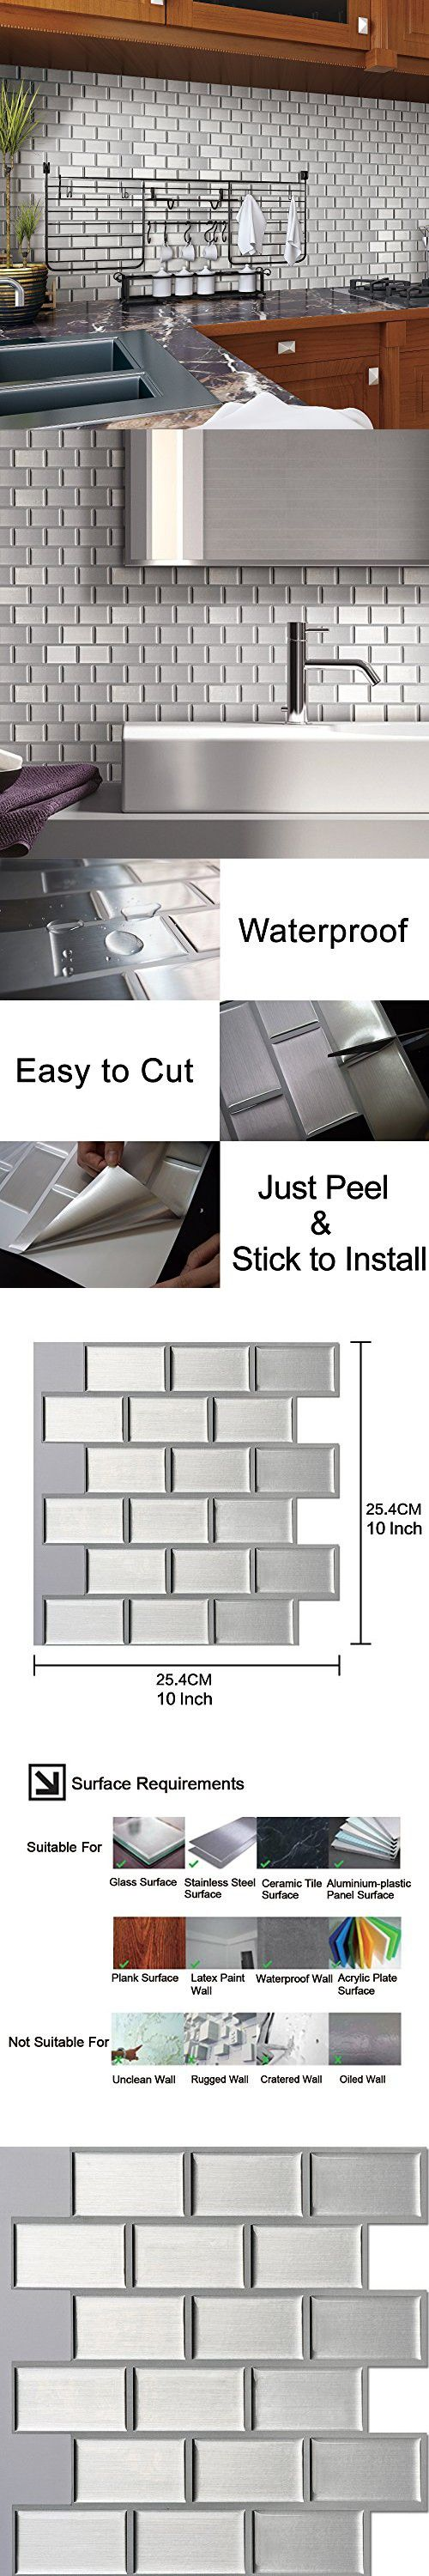 """Ecoart Peel and Stick Self-Adhesive Wall Tile for Kitchen / Bathroom Backsplash in Silver Brick Style, 10"""" X 10"""" (Pack of 6)"""